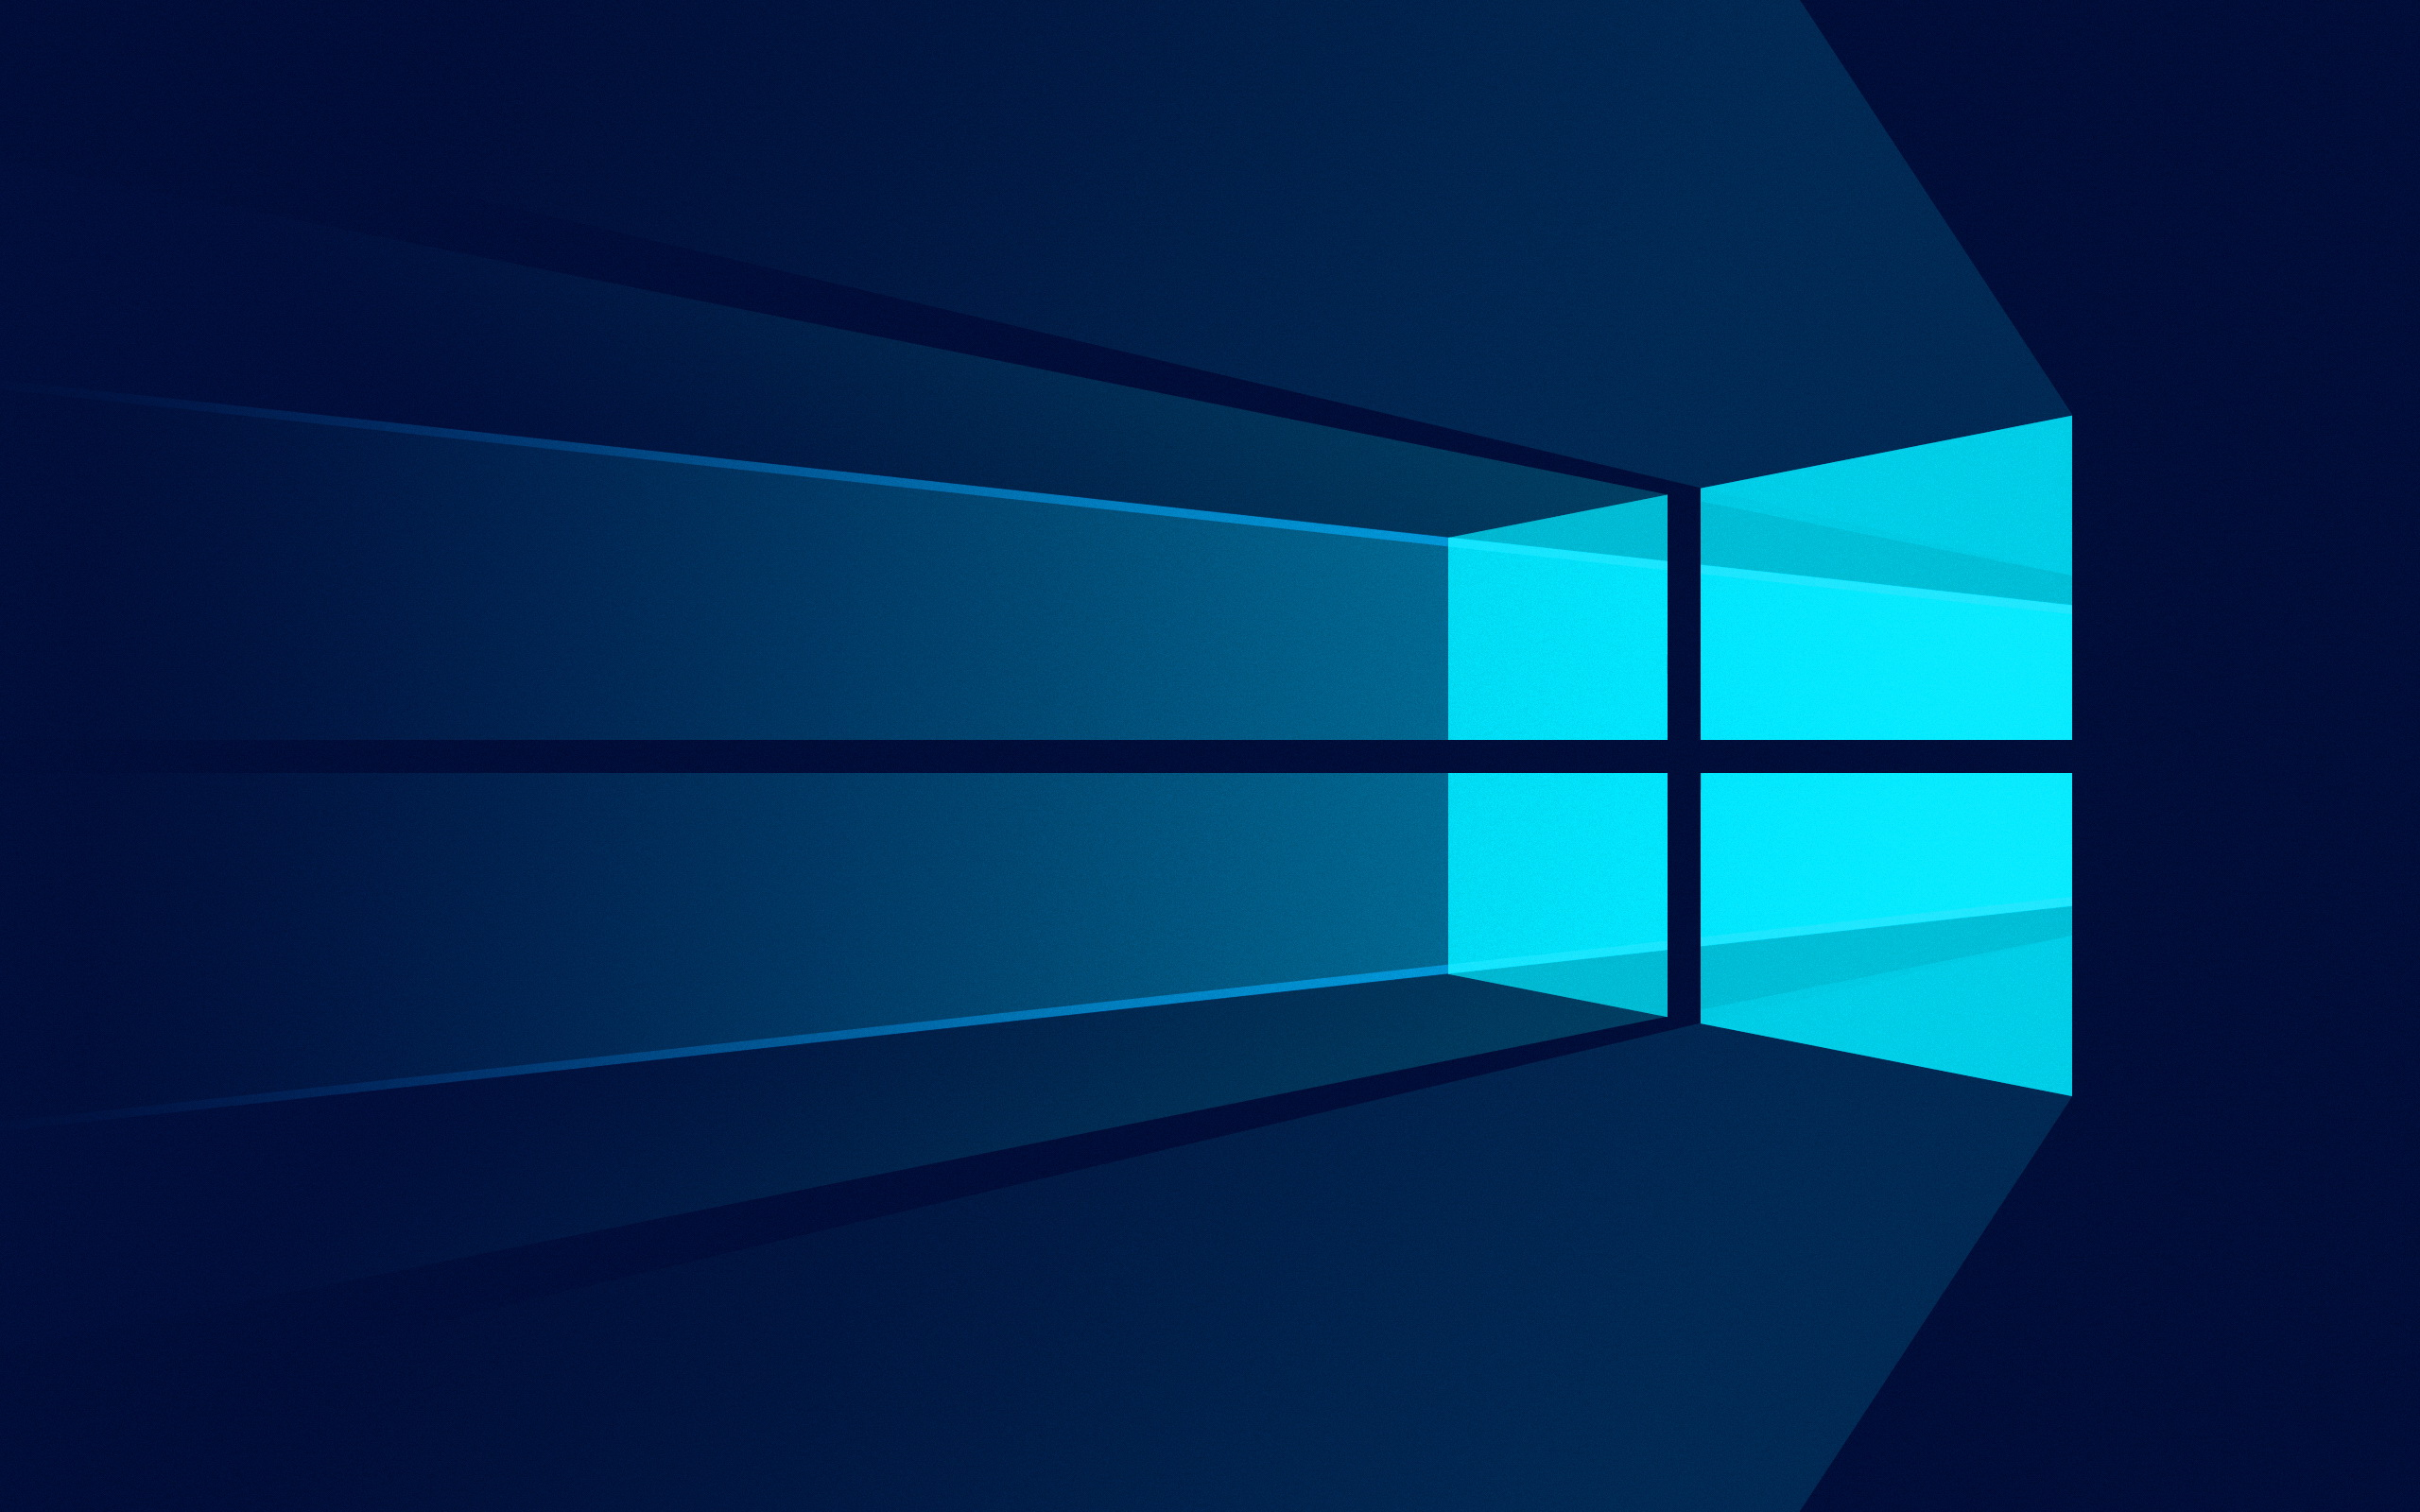 Windows 10 wallpapers for Wallpaper mobile home walls